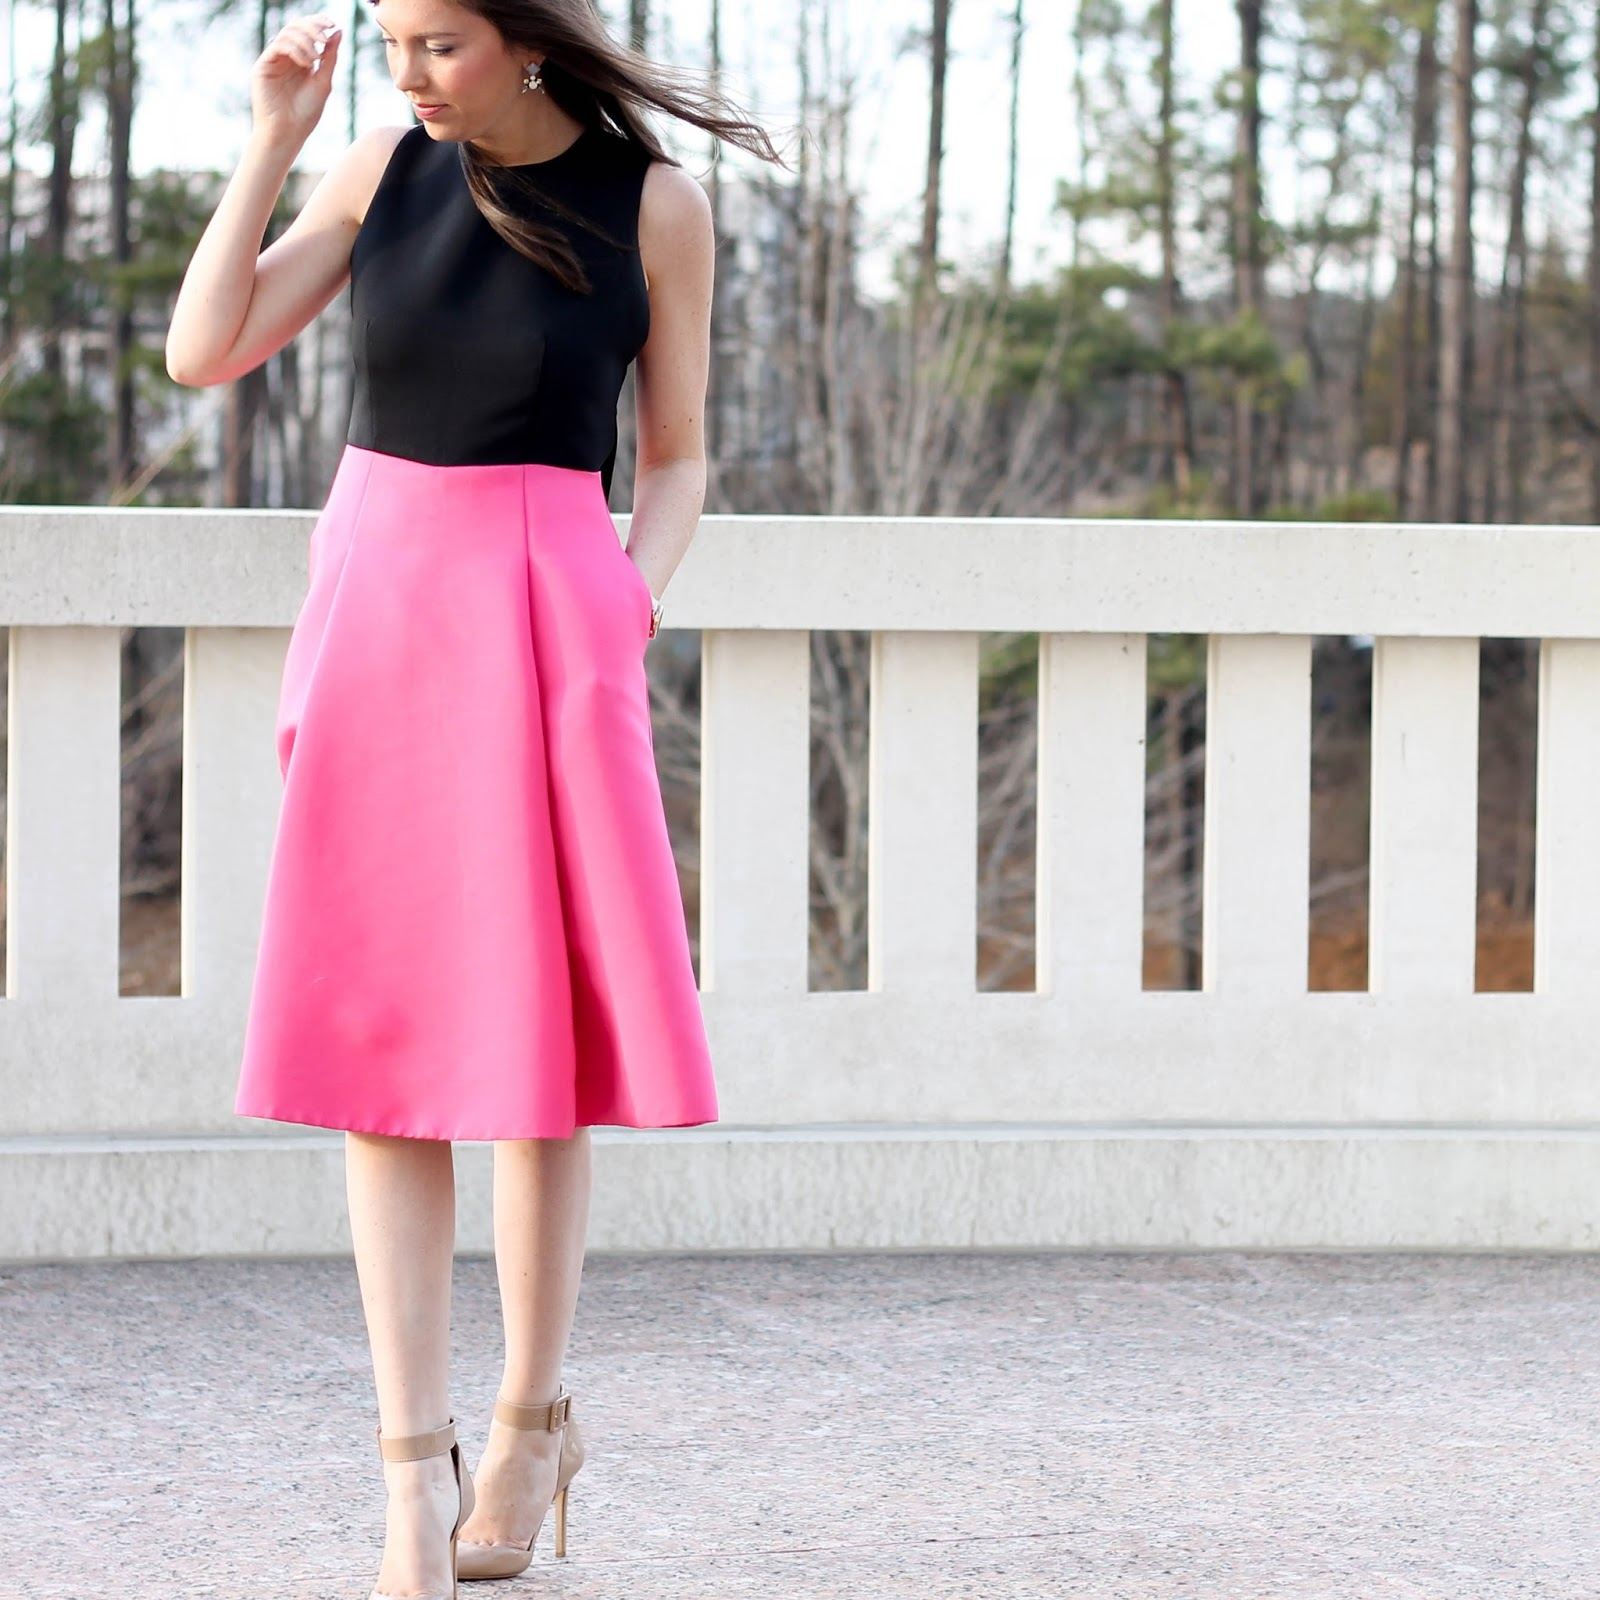 Kate Spade Bow back colorblock dress, Rent the Runway Valentine's dress, Rent the Runway wedding dress idea, NC Fashion Blogger, Stella Dot earrings, fossil tan leather watch with rose gold face, pretty in the pines blog